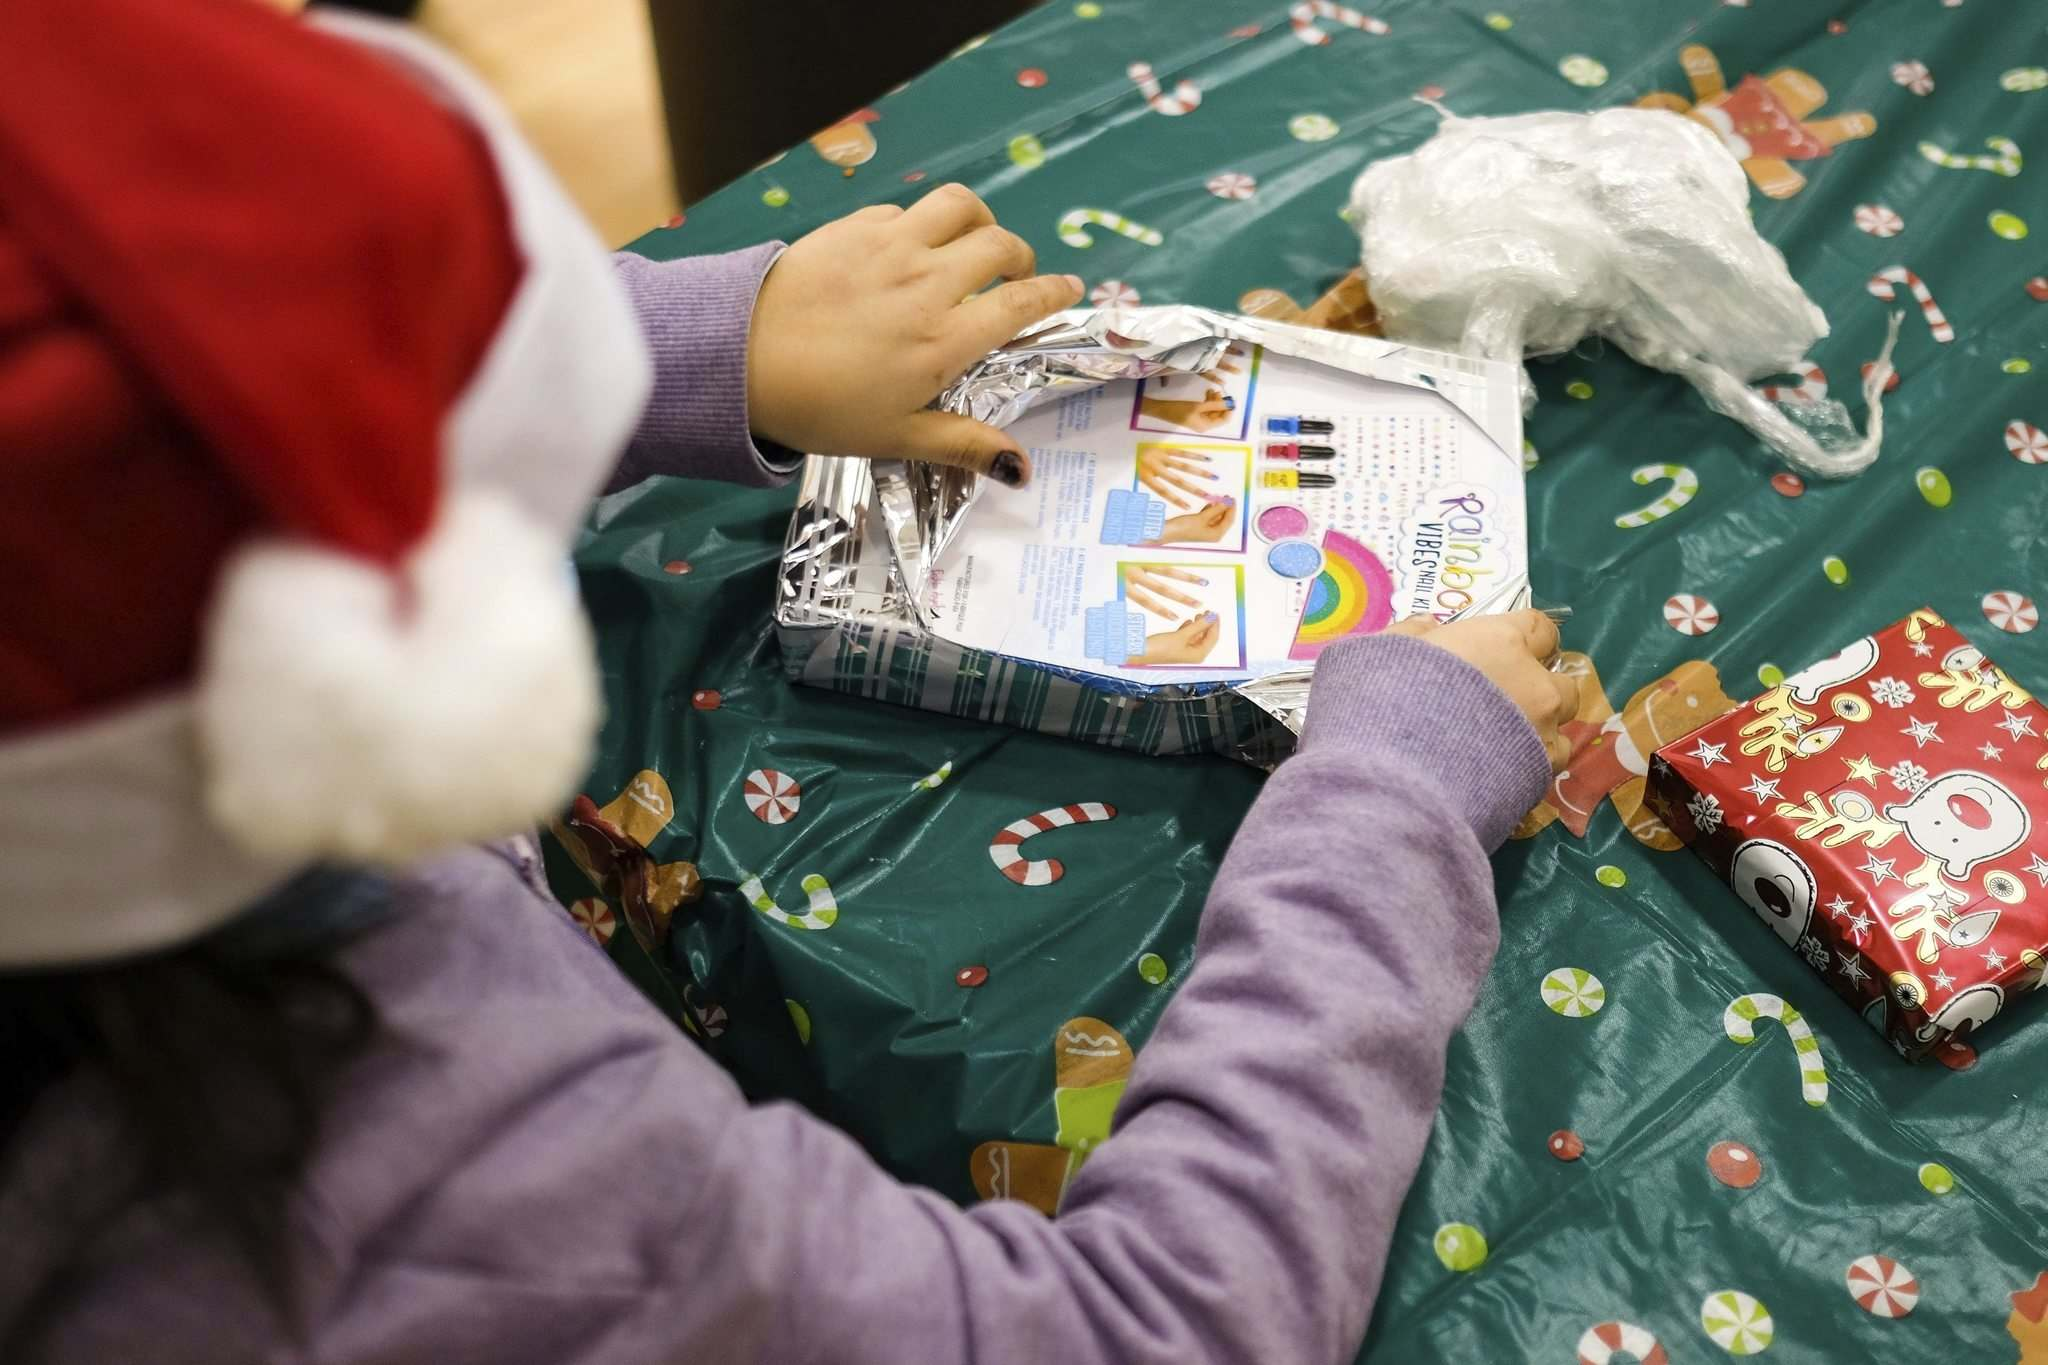 A child finishes unwrapping a Christmas present as part of a game.